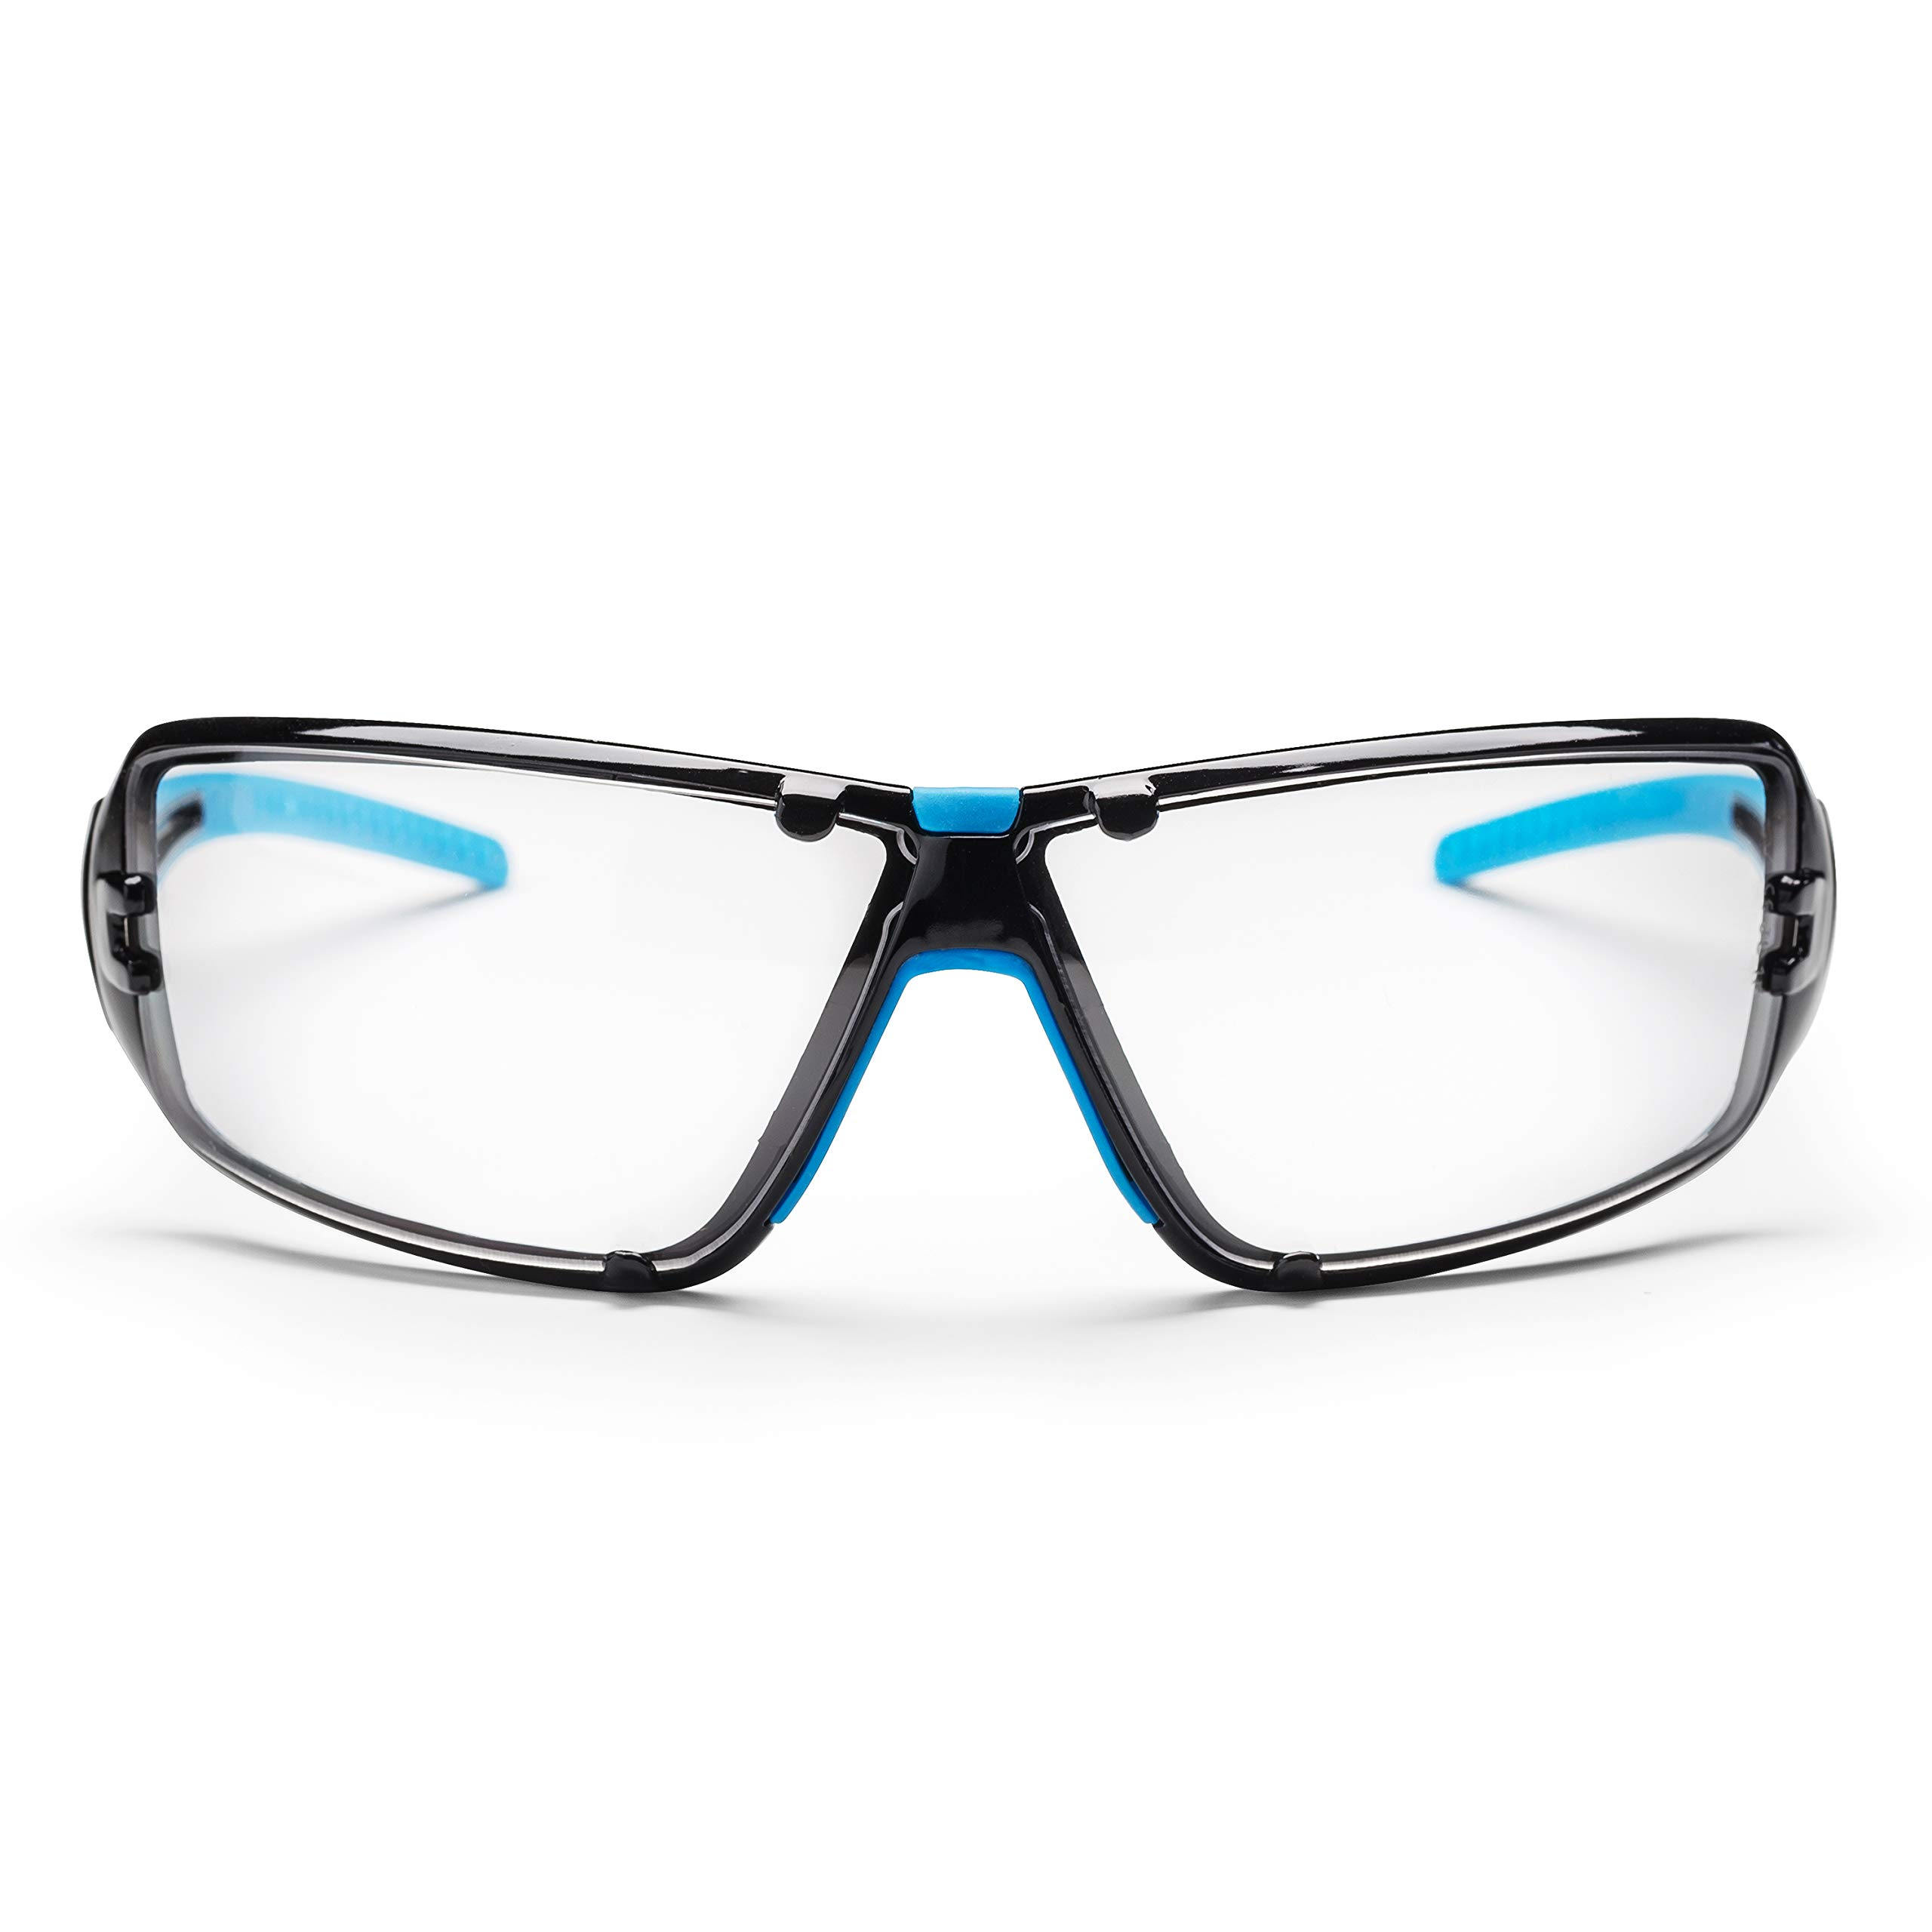 SolidWork professional safety glasses with integrated side protection - eye protection with clear, fog-free, scratch-resistant and UV protective coated lenses - Spectacles incl. storage bag by SolidWork